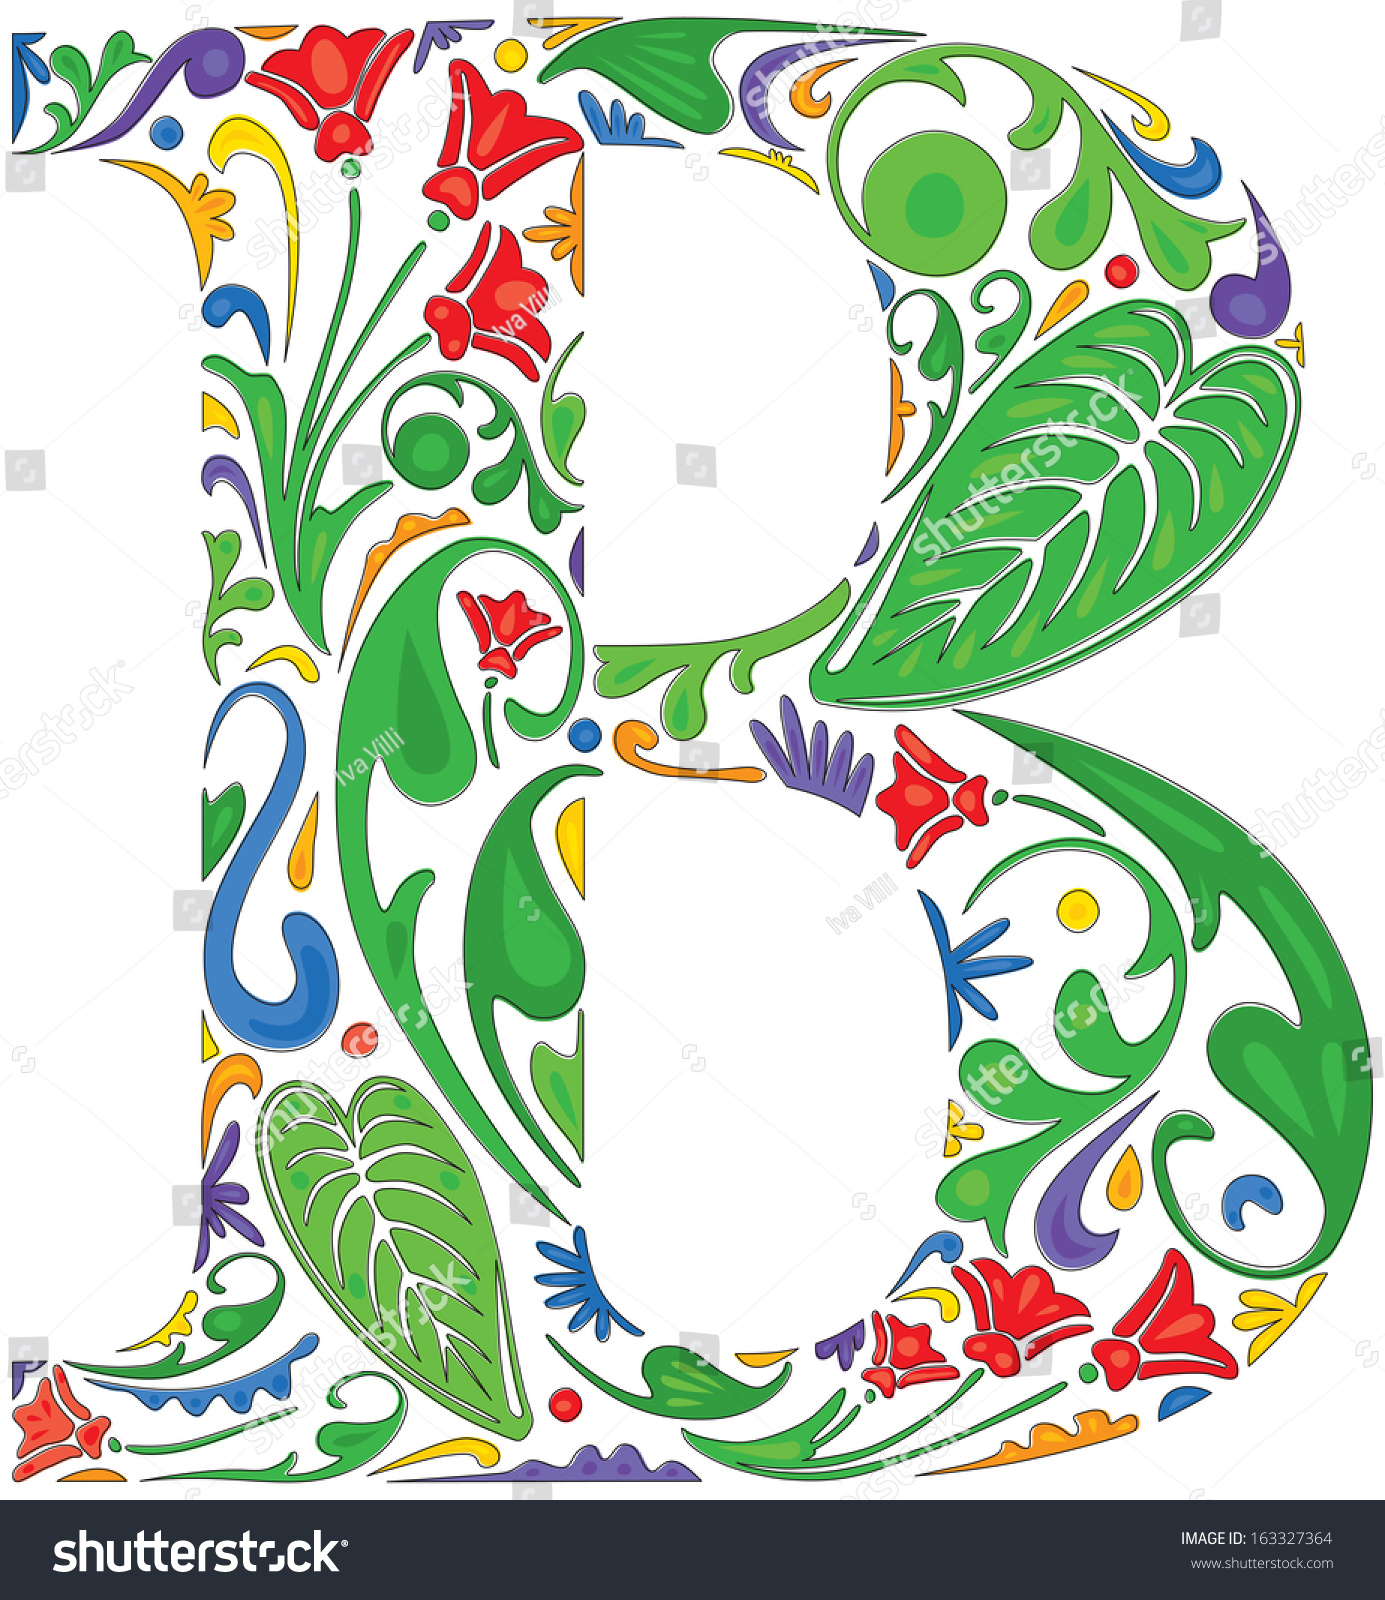 Colorful Floral Initial Capital Letter B Stock Vector (Royalty Free ...